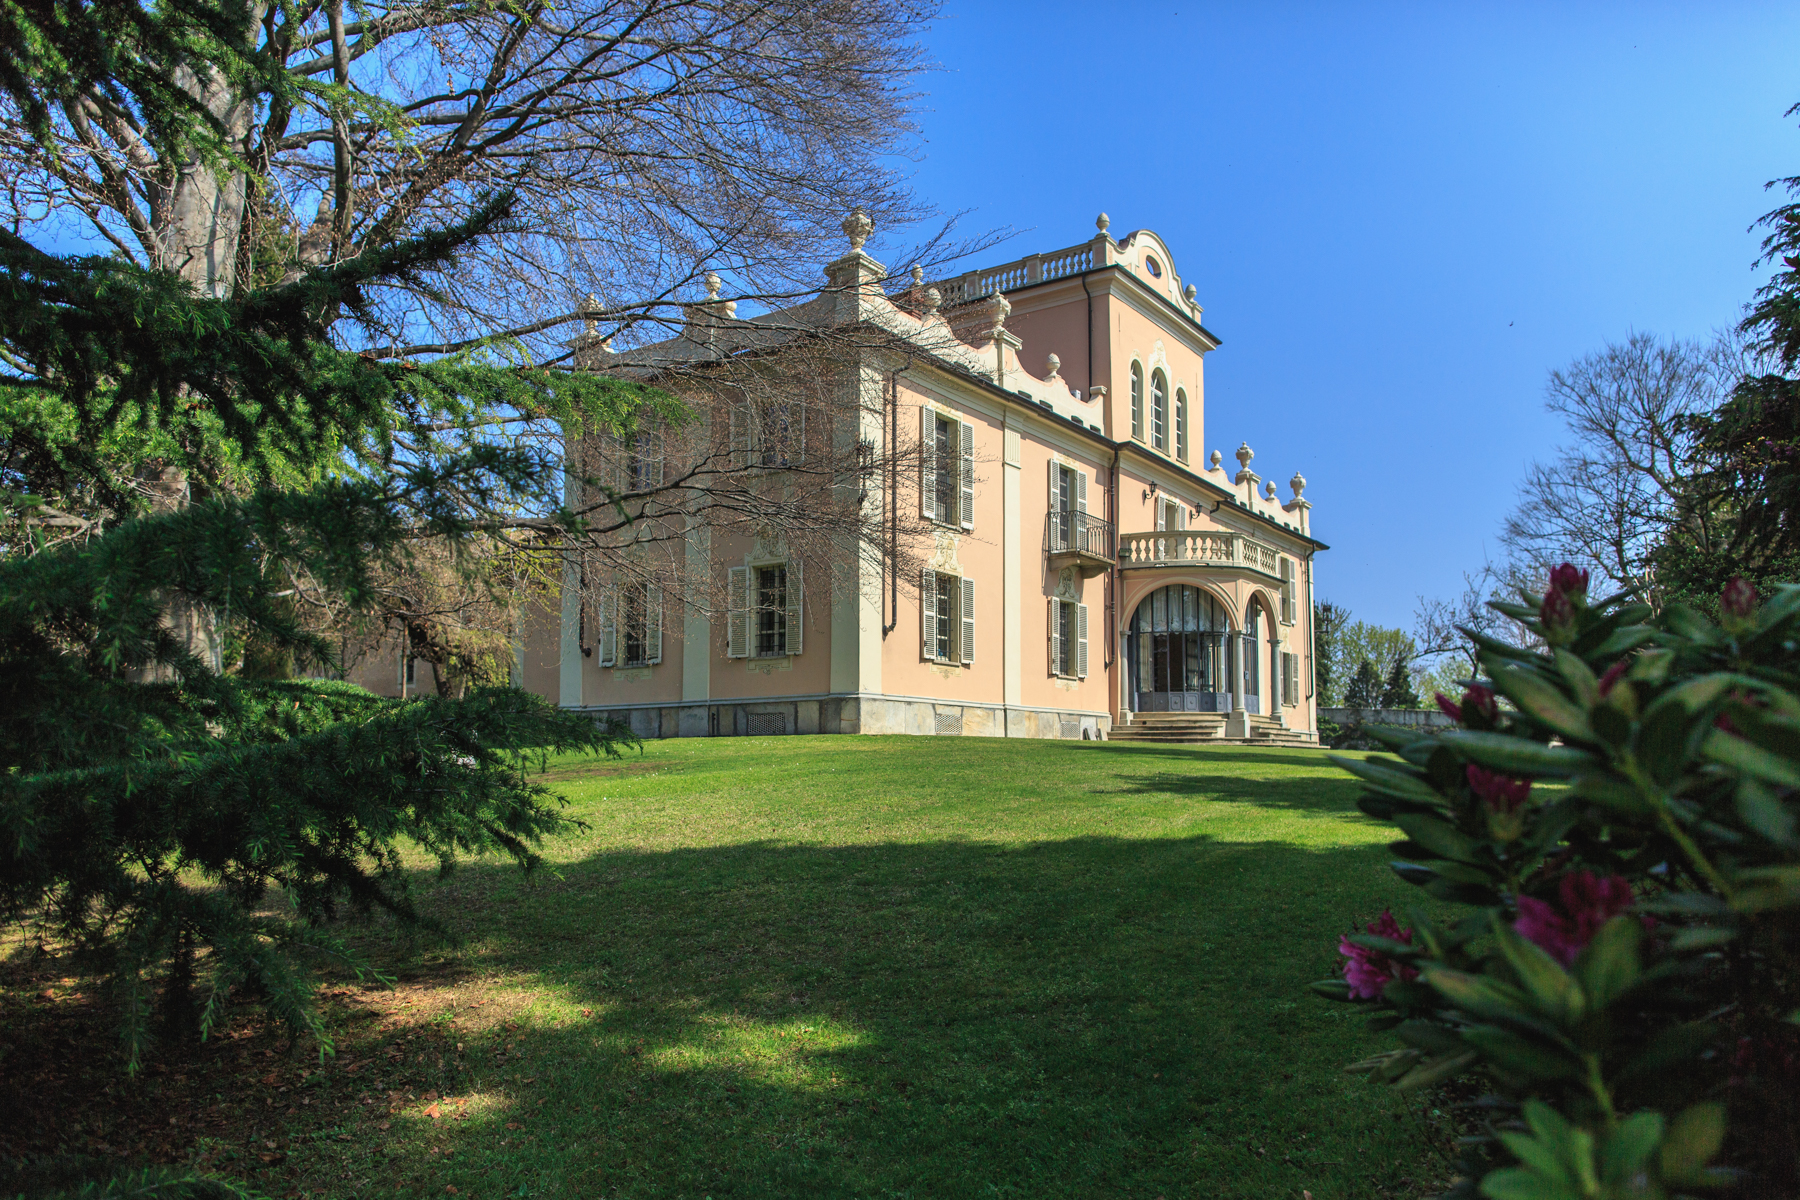 Single Family Home for Sale at Gorgeous villa of late 17th century Pinerolo, Turin, 10064 Italy